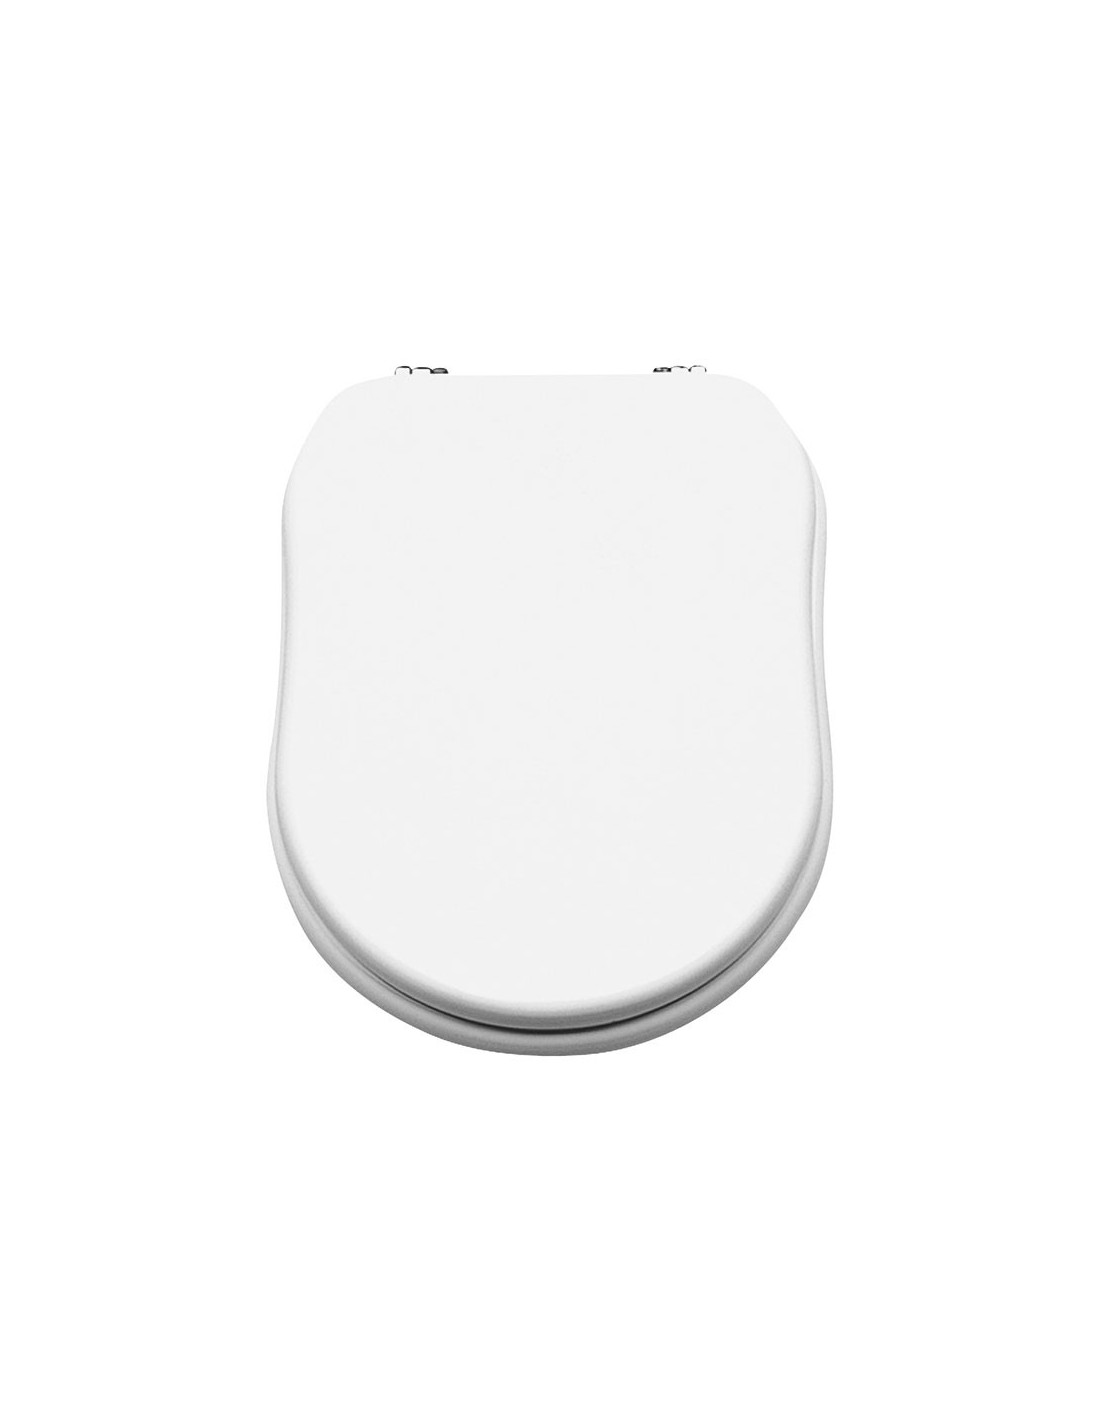 The Toilet Toilet Toilet Lid Cover Top Water The